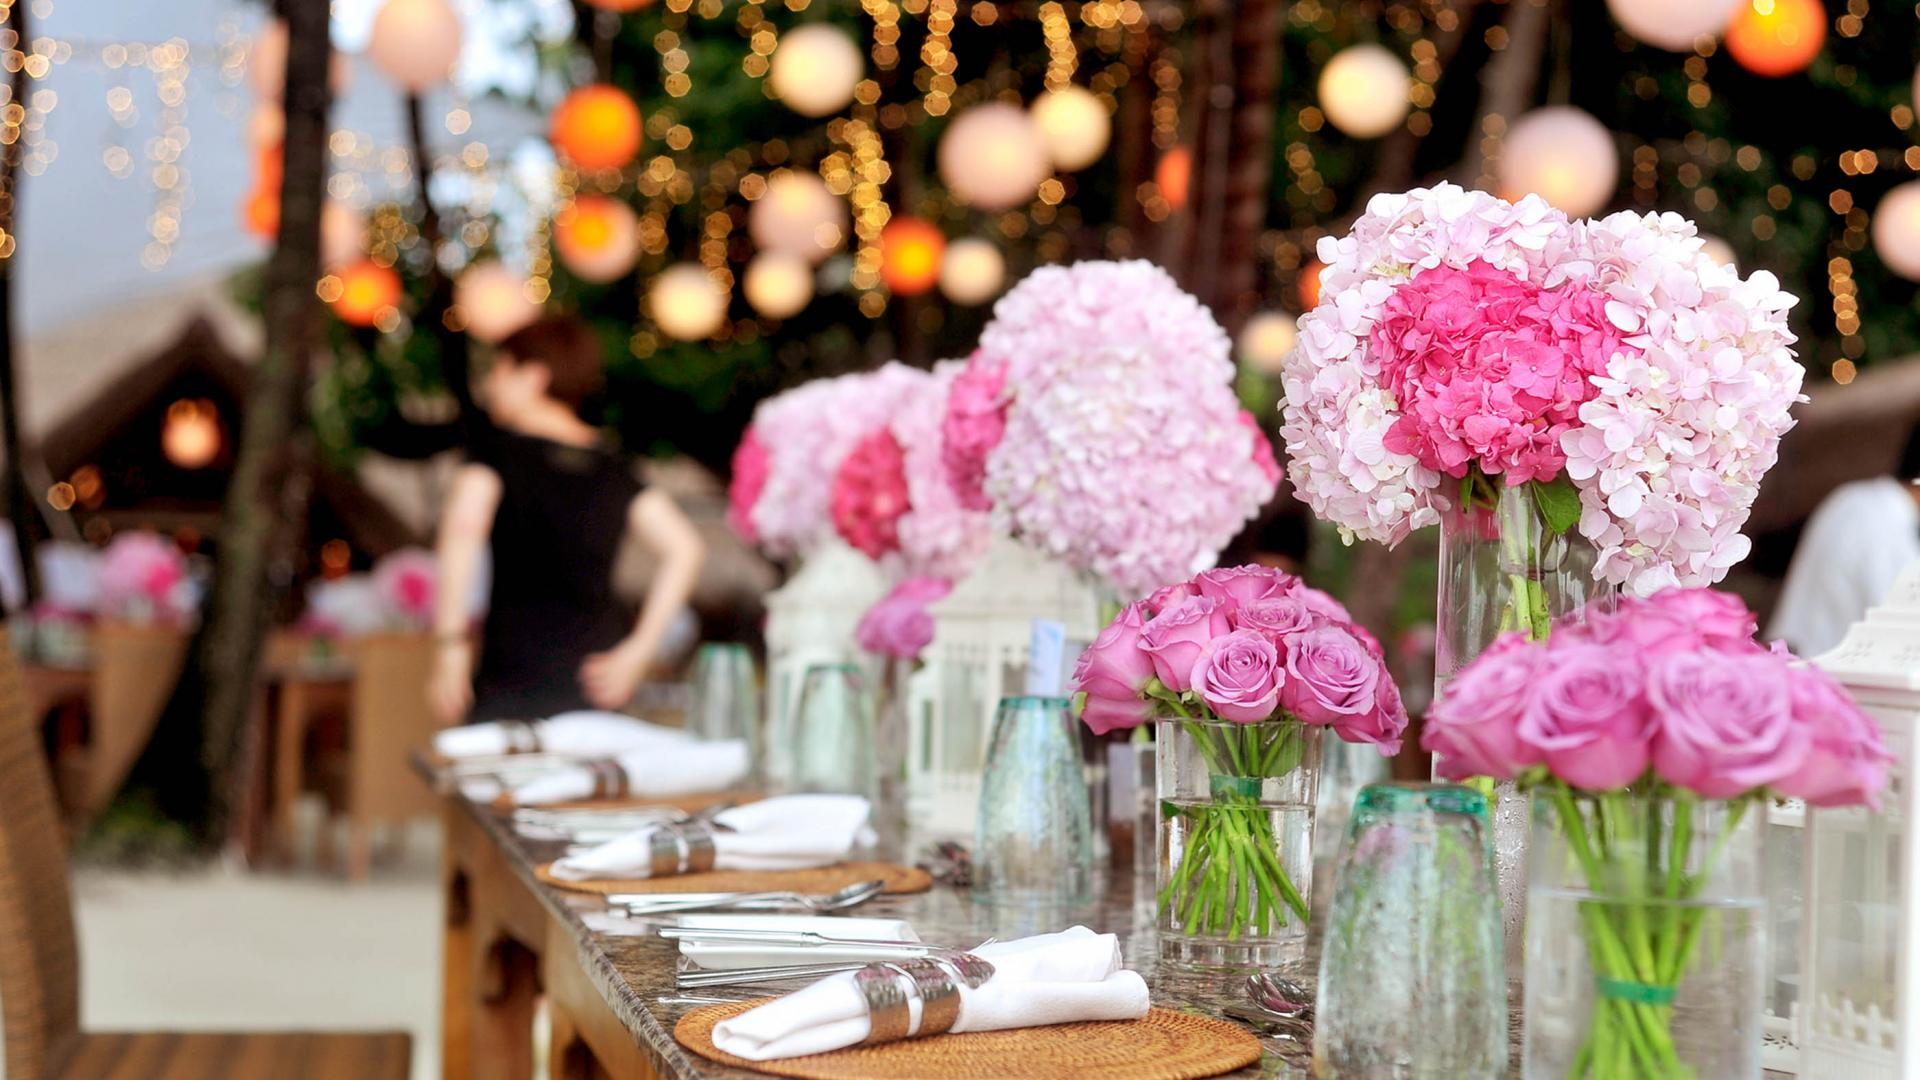 Testimonials Image of beautifully set up table with flowers